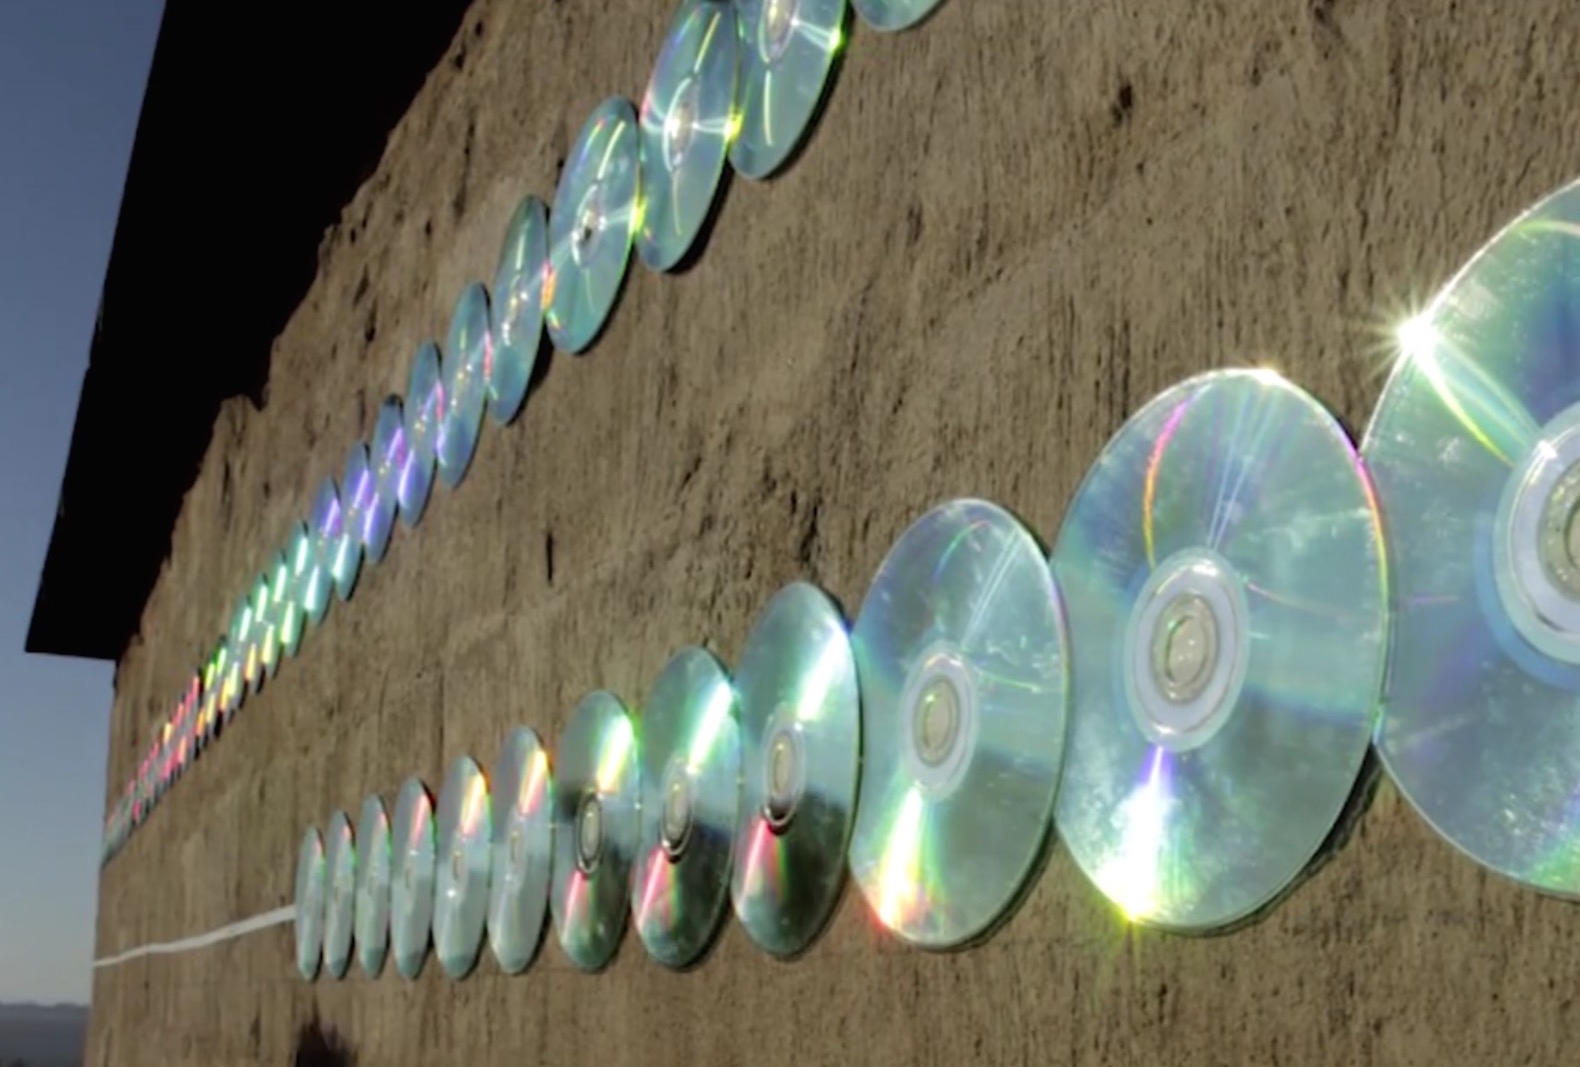 1 000 recycled cds transform an abandoned farmhouse into a shimmering work of art inhabitat. Black Bedroom Furniture Sets. Home Design Ideas